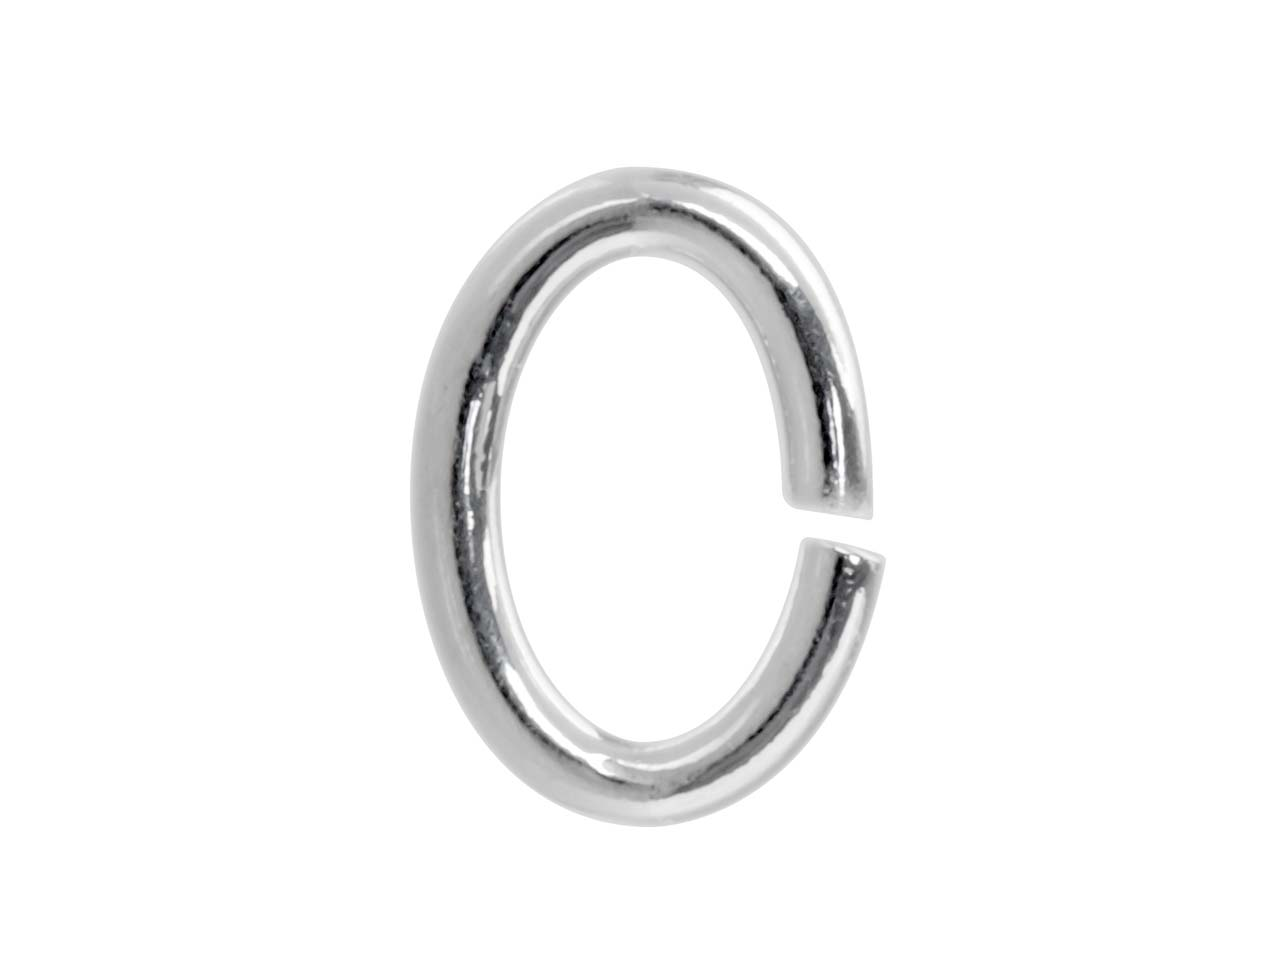 Sterling Silver Jump Ring Oval 7mm, Pack of 10